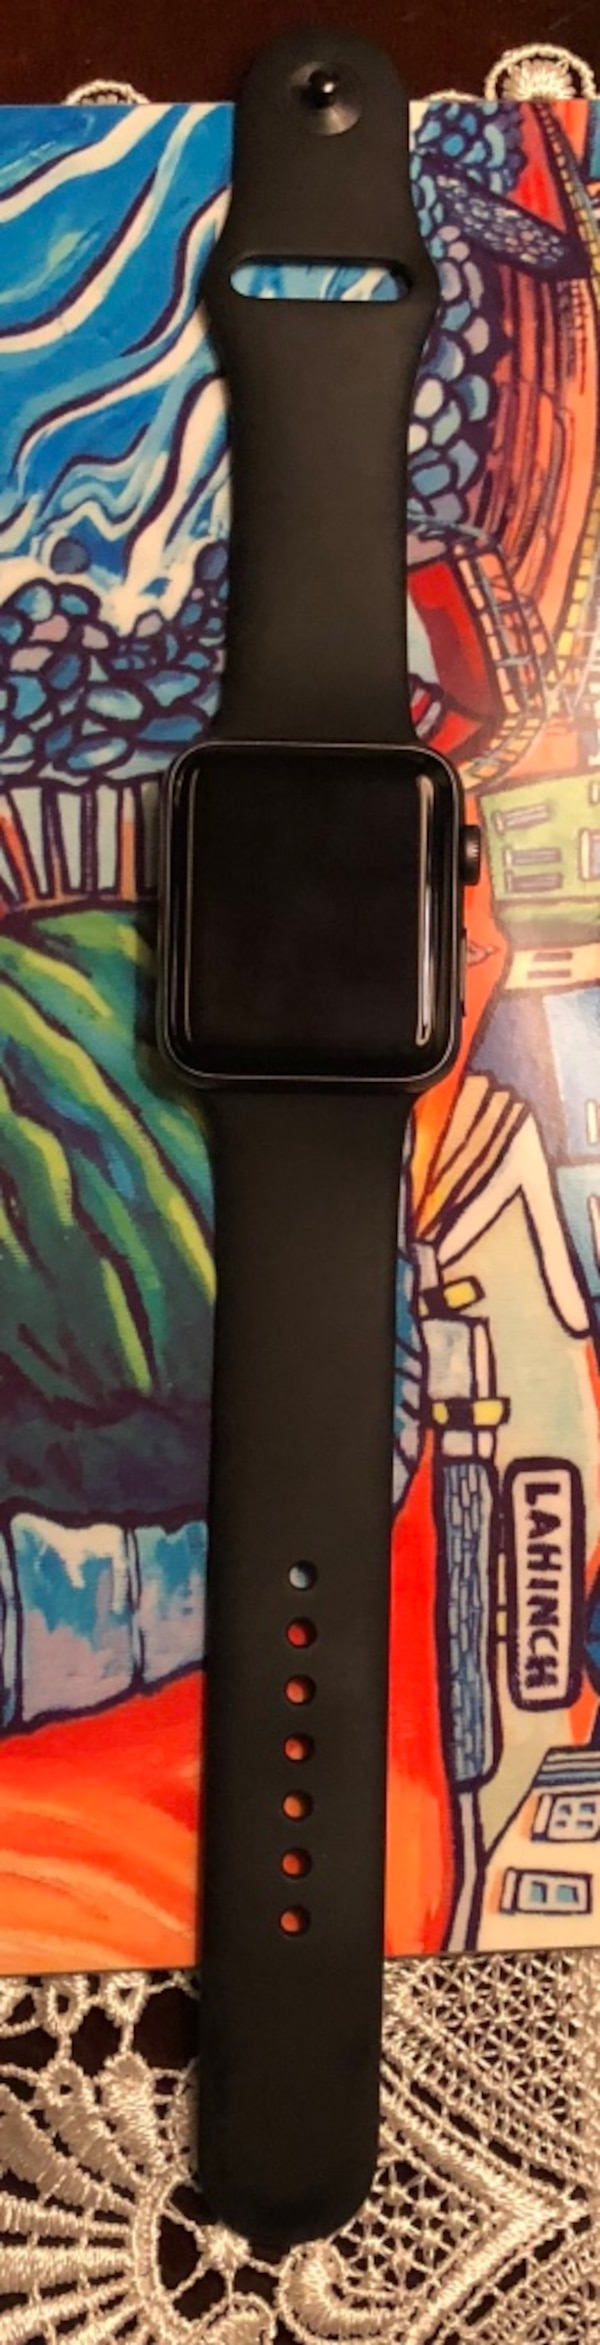 Apple Watch Series 3 42mm LTE space gray